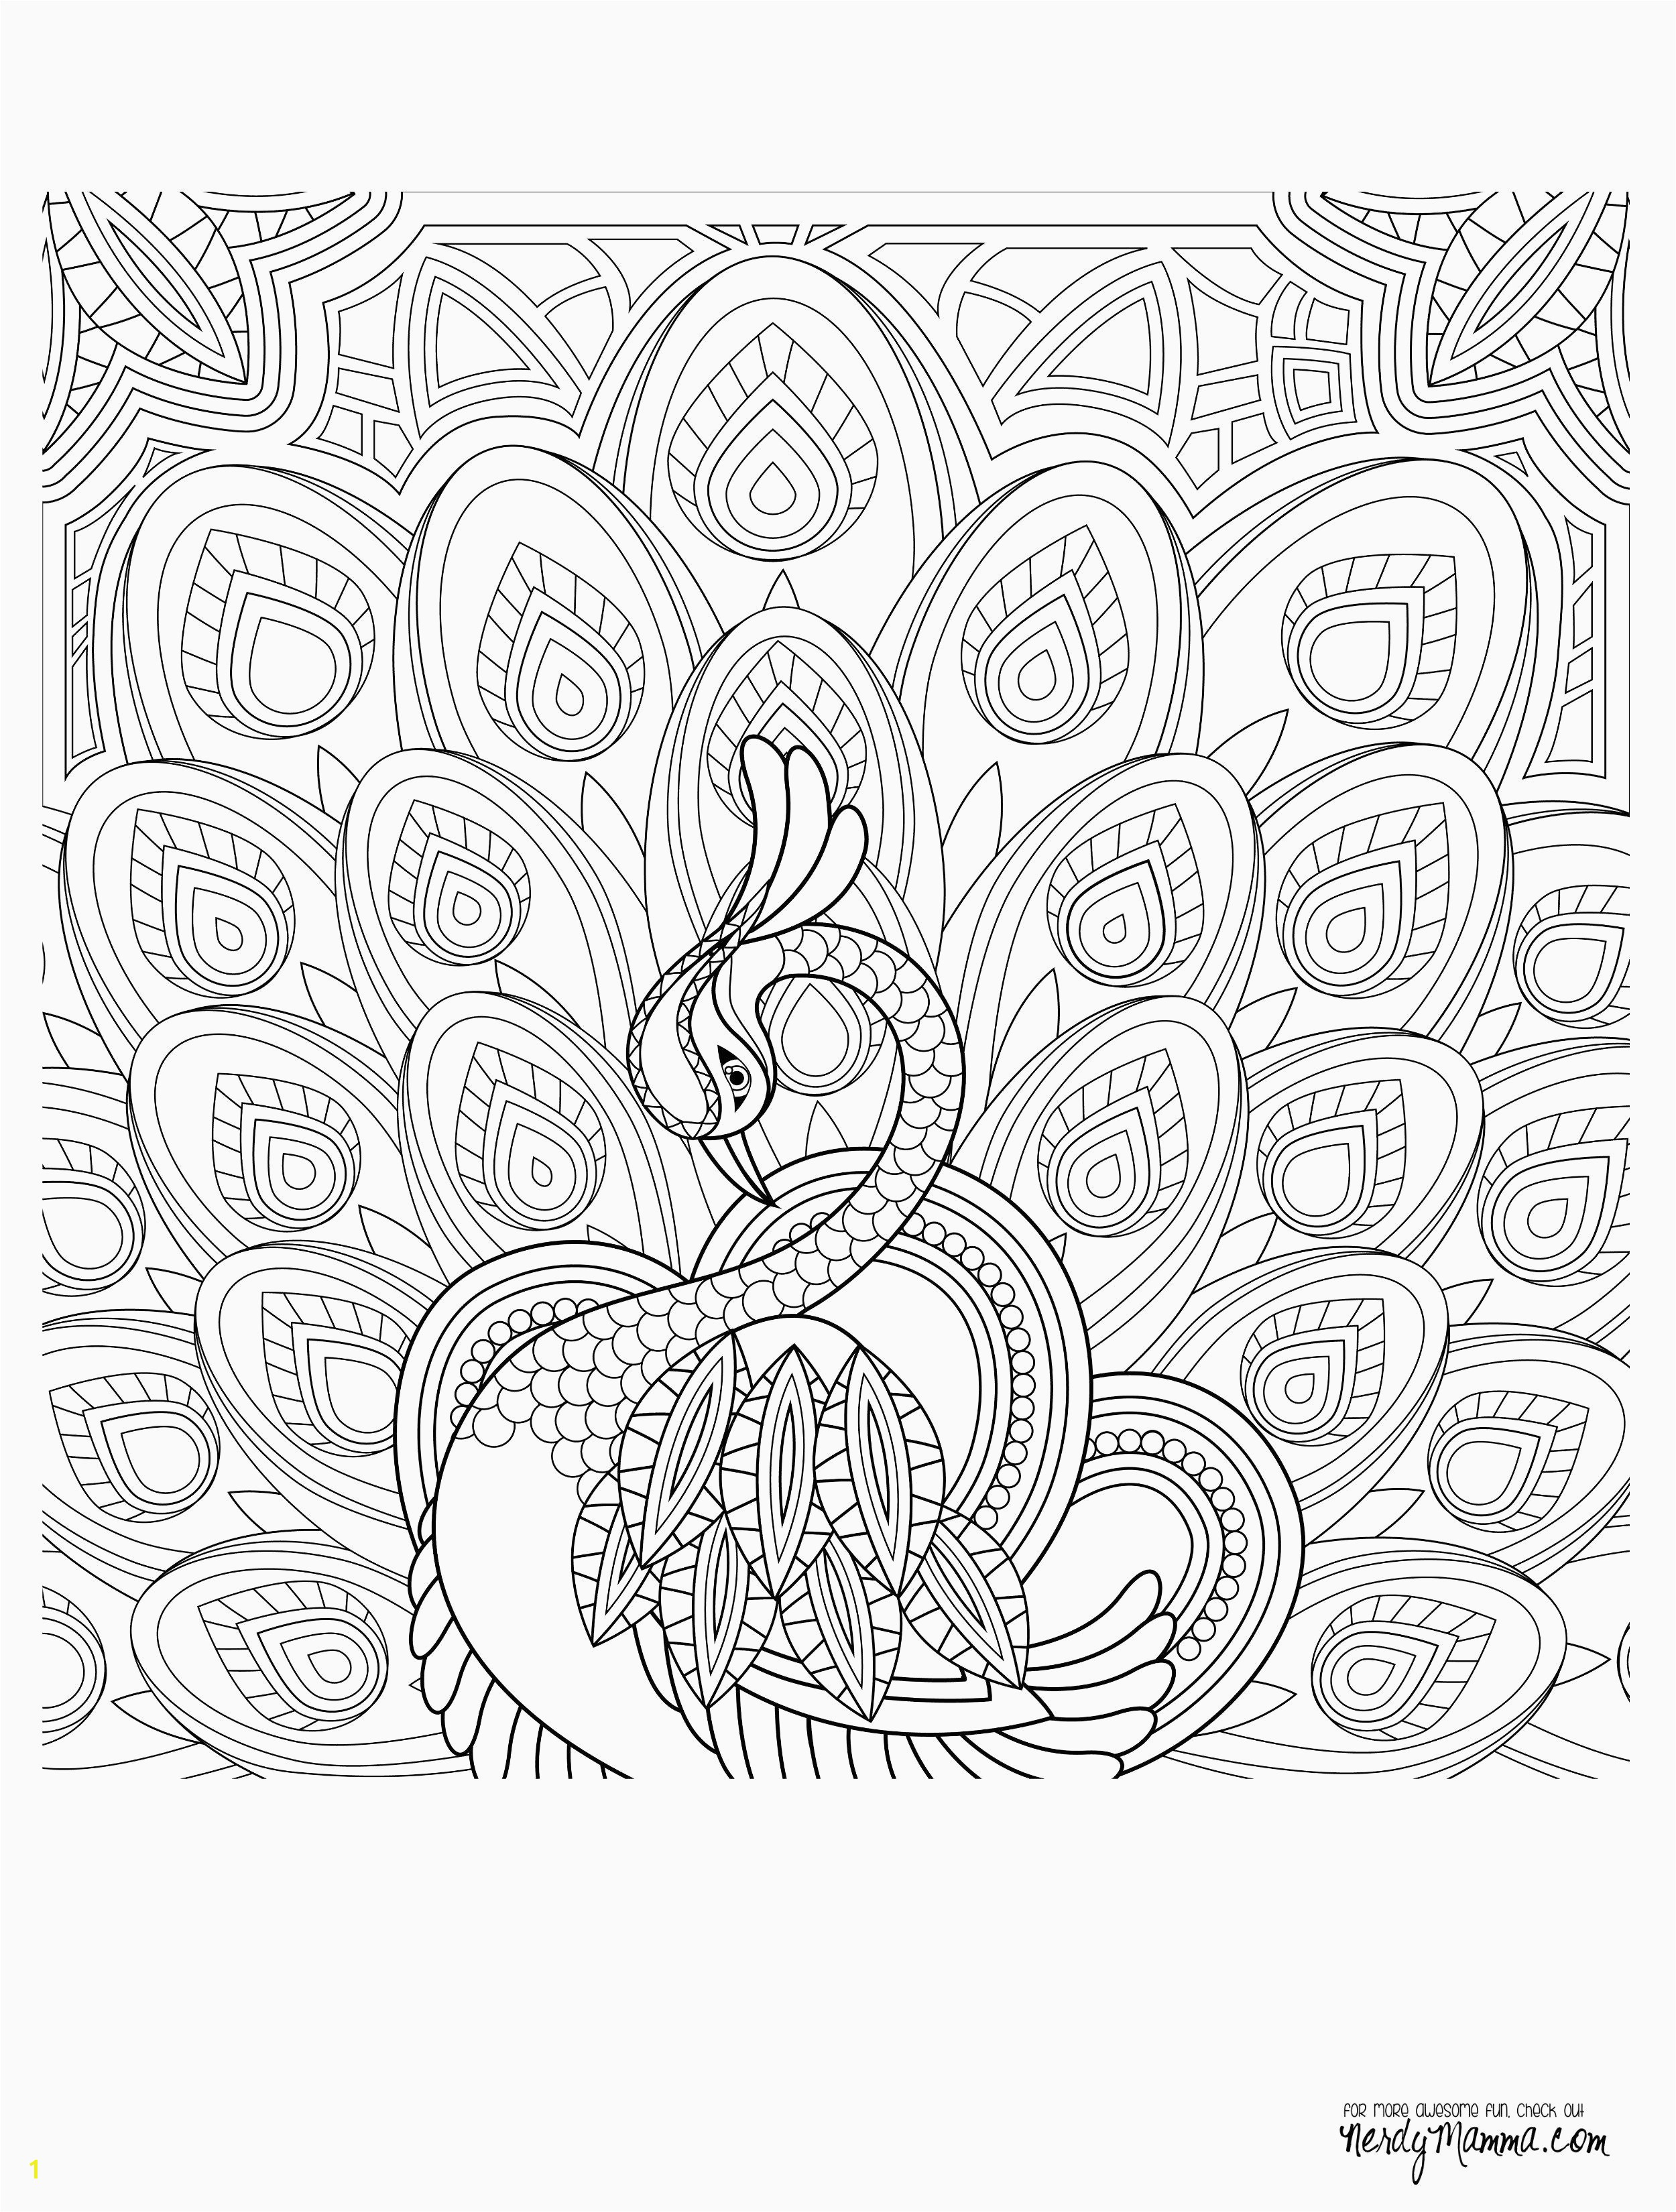 Inspirational Word Coloring Pages Inspirational Word Coloring Pages Fresh Swear Word Coloring Pages